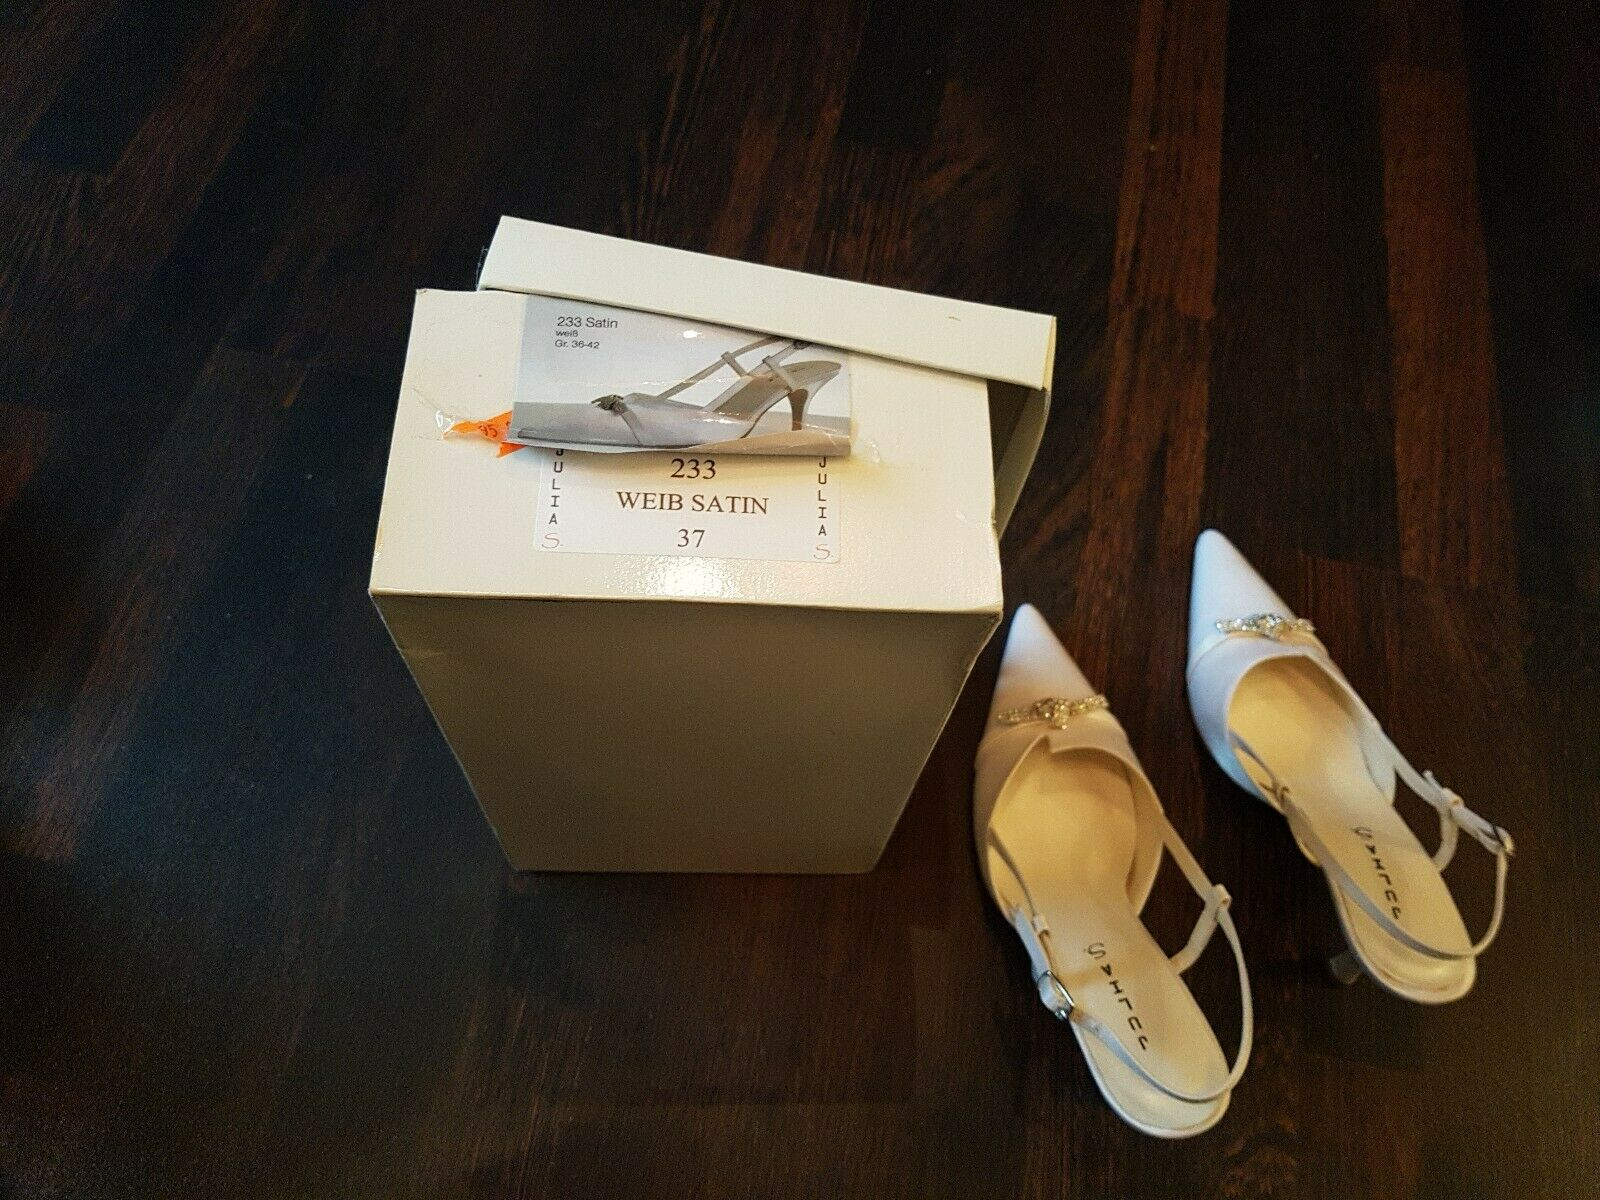 Bridal shoes Size 37 White Lady Julia S NEW Strappy 6,5 cm Heel Height Satin